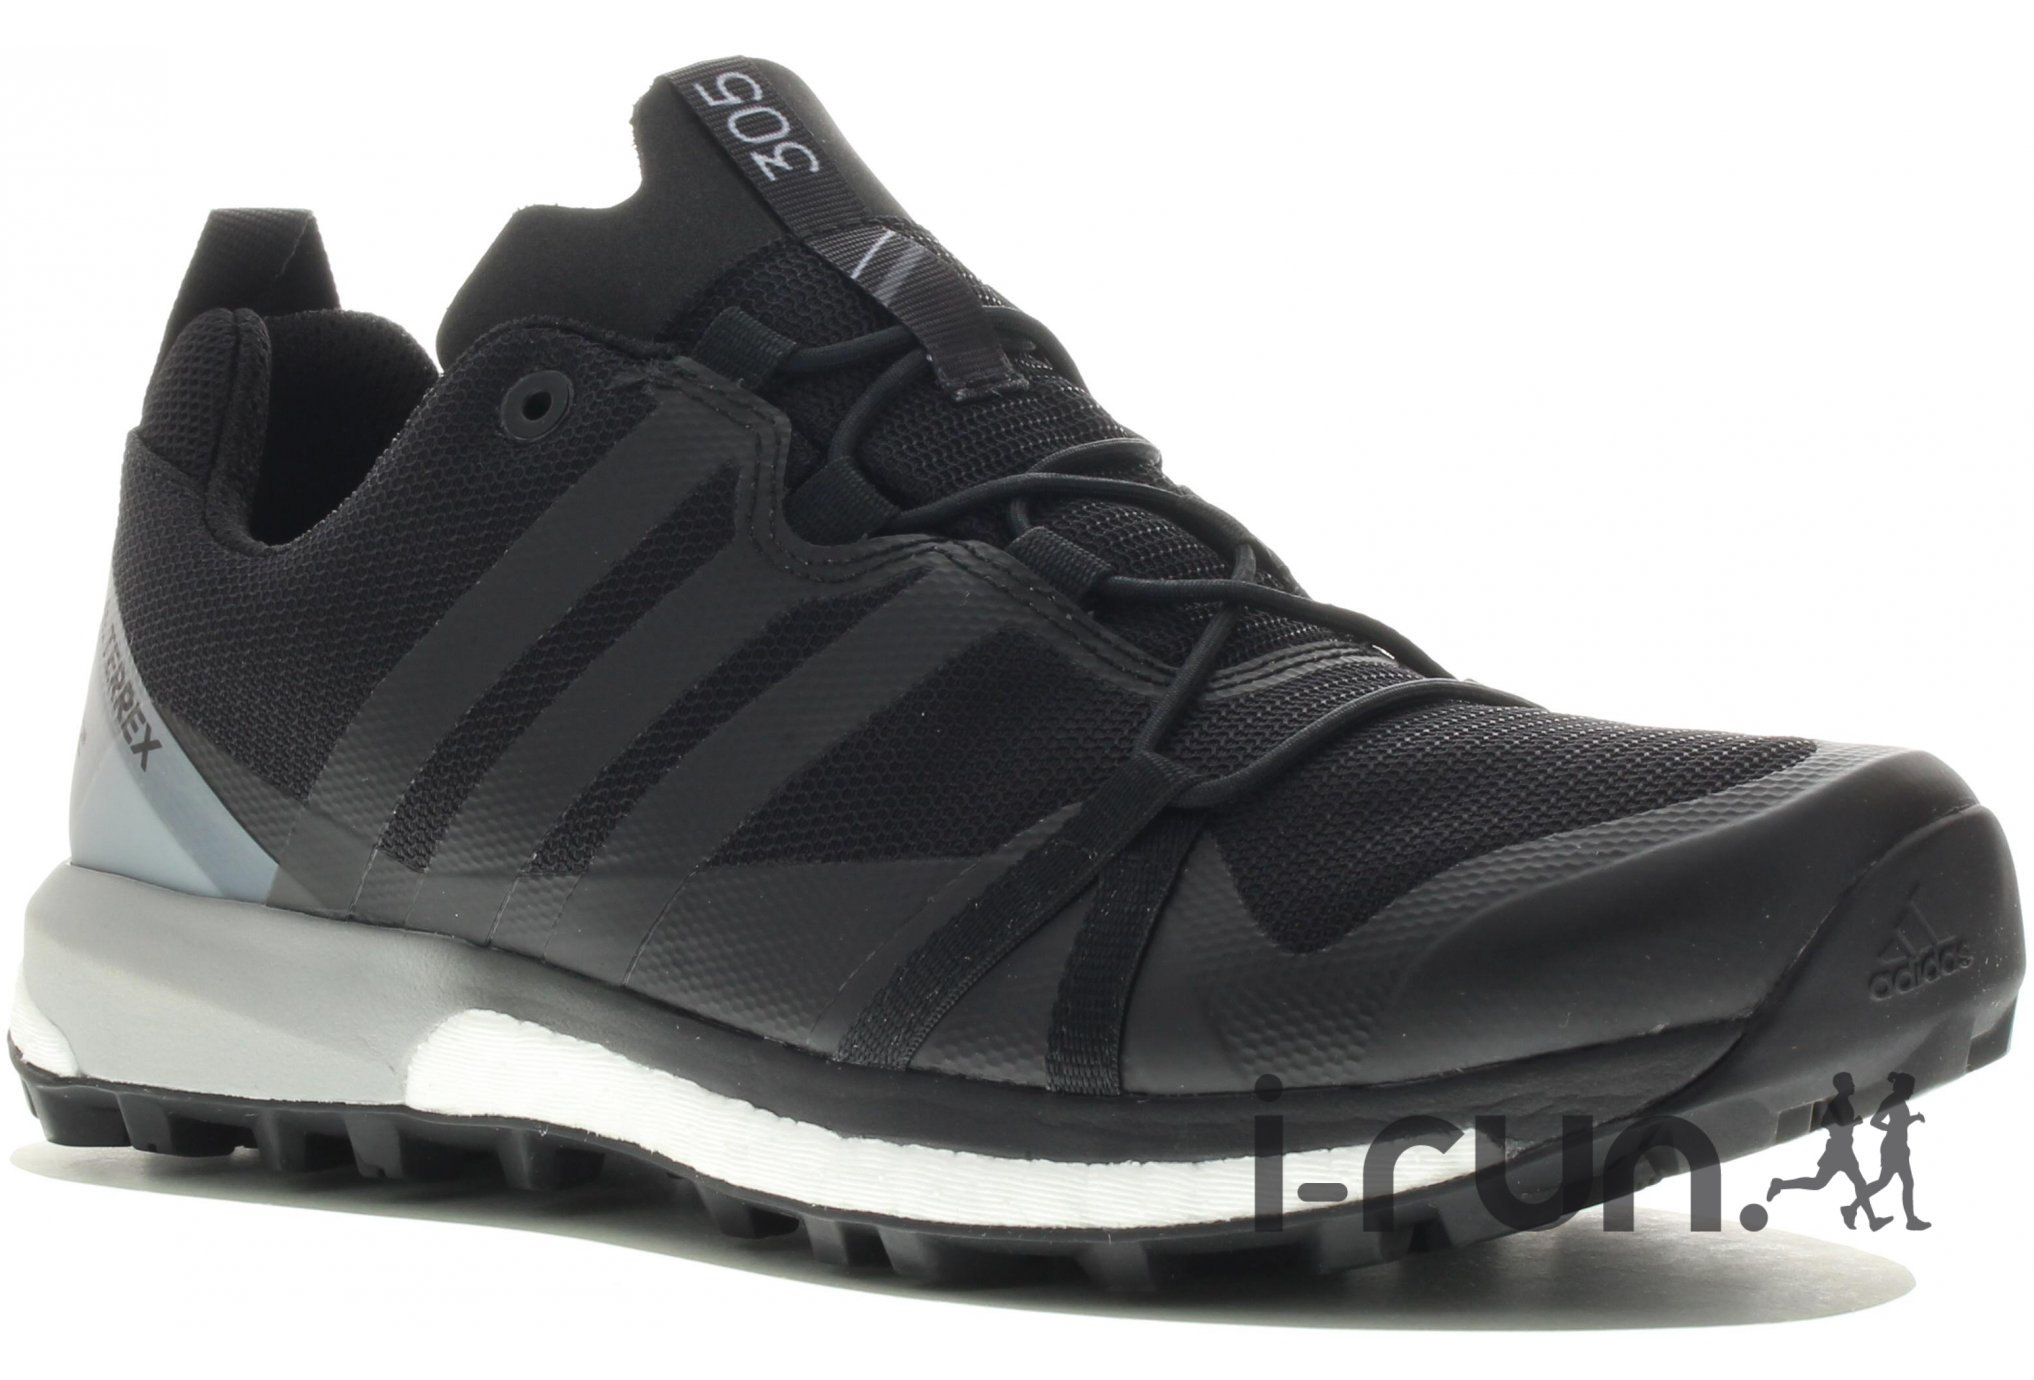 adidas gore tex running,Adidas Kanadia 7 Gore Tex Trail Running